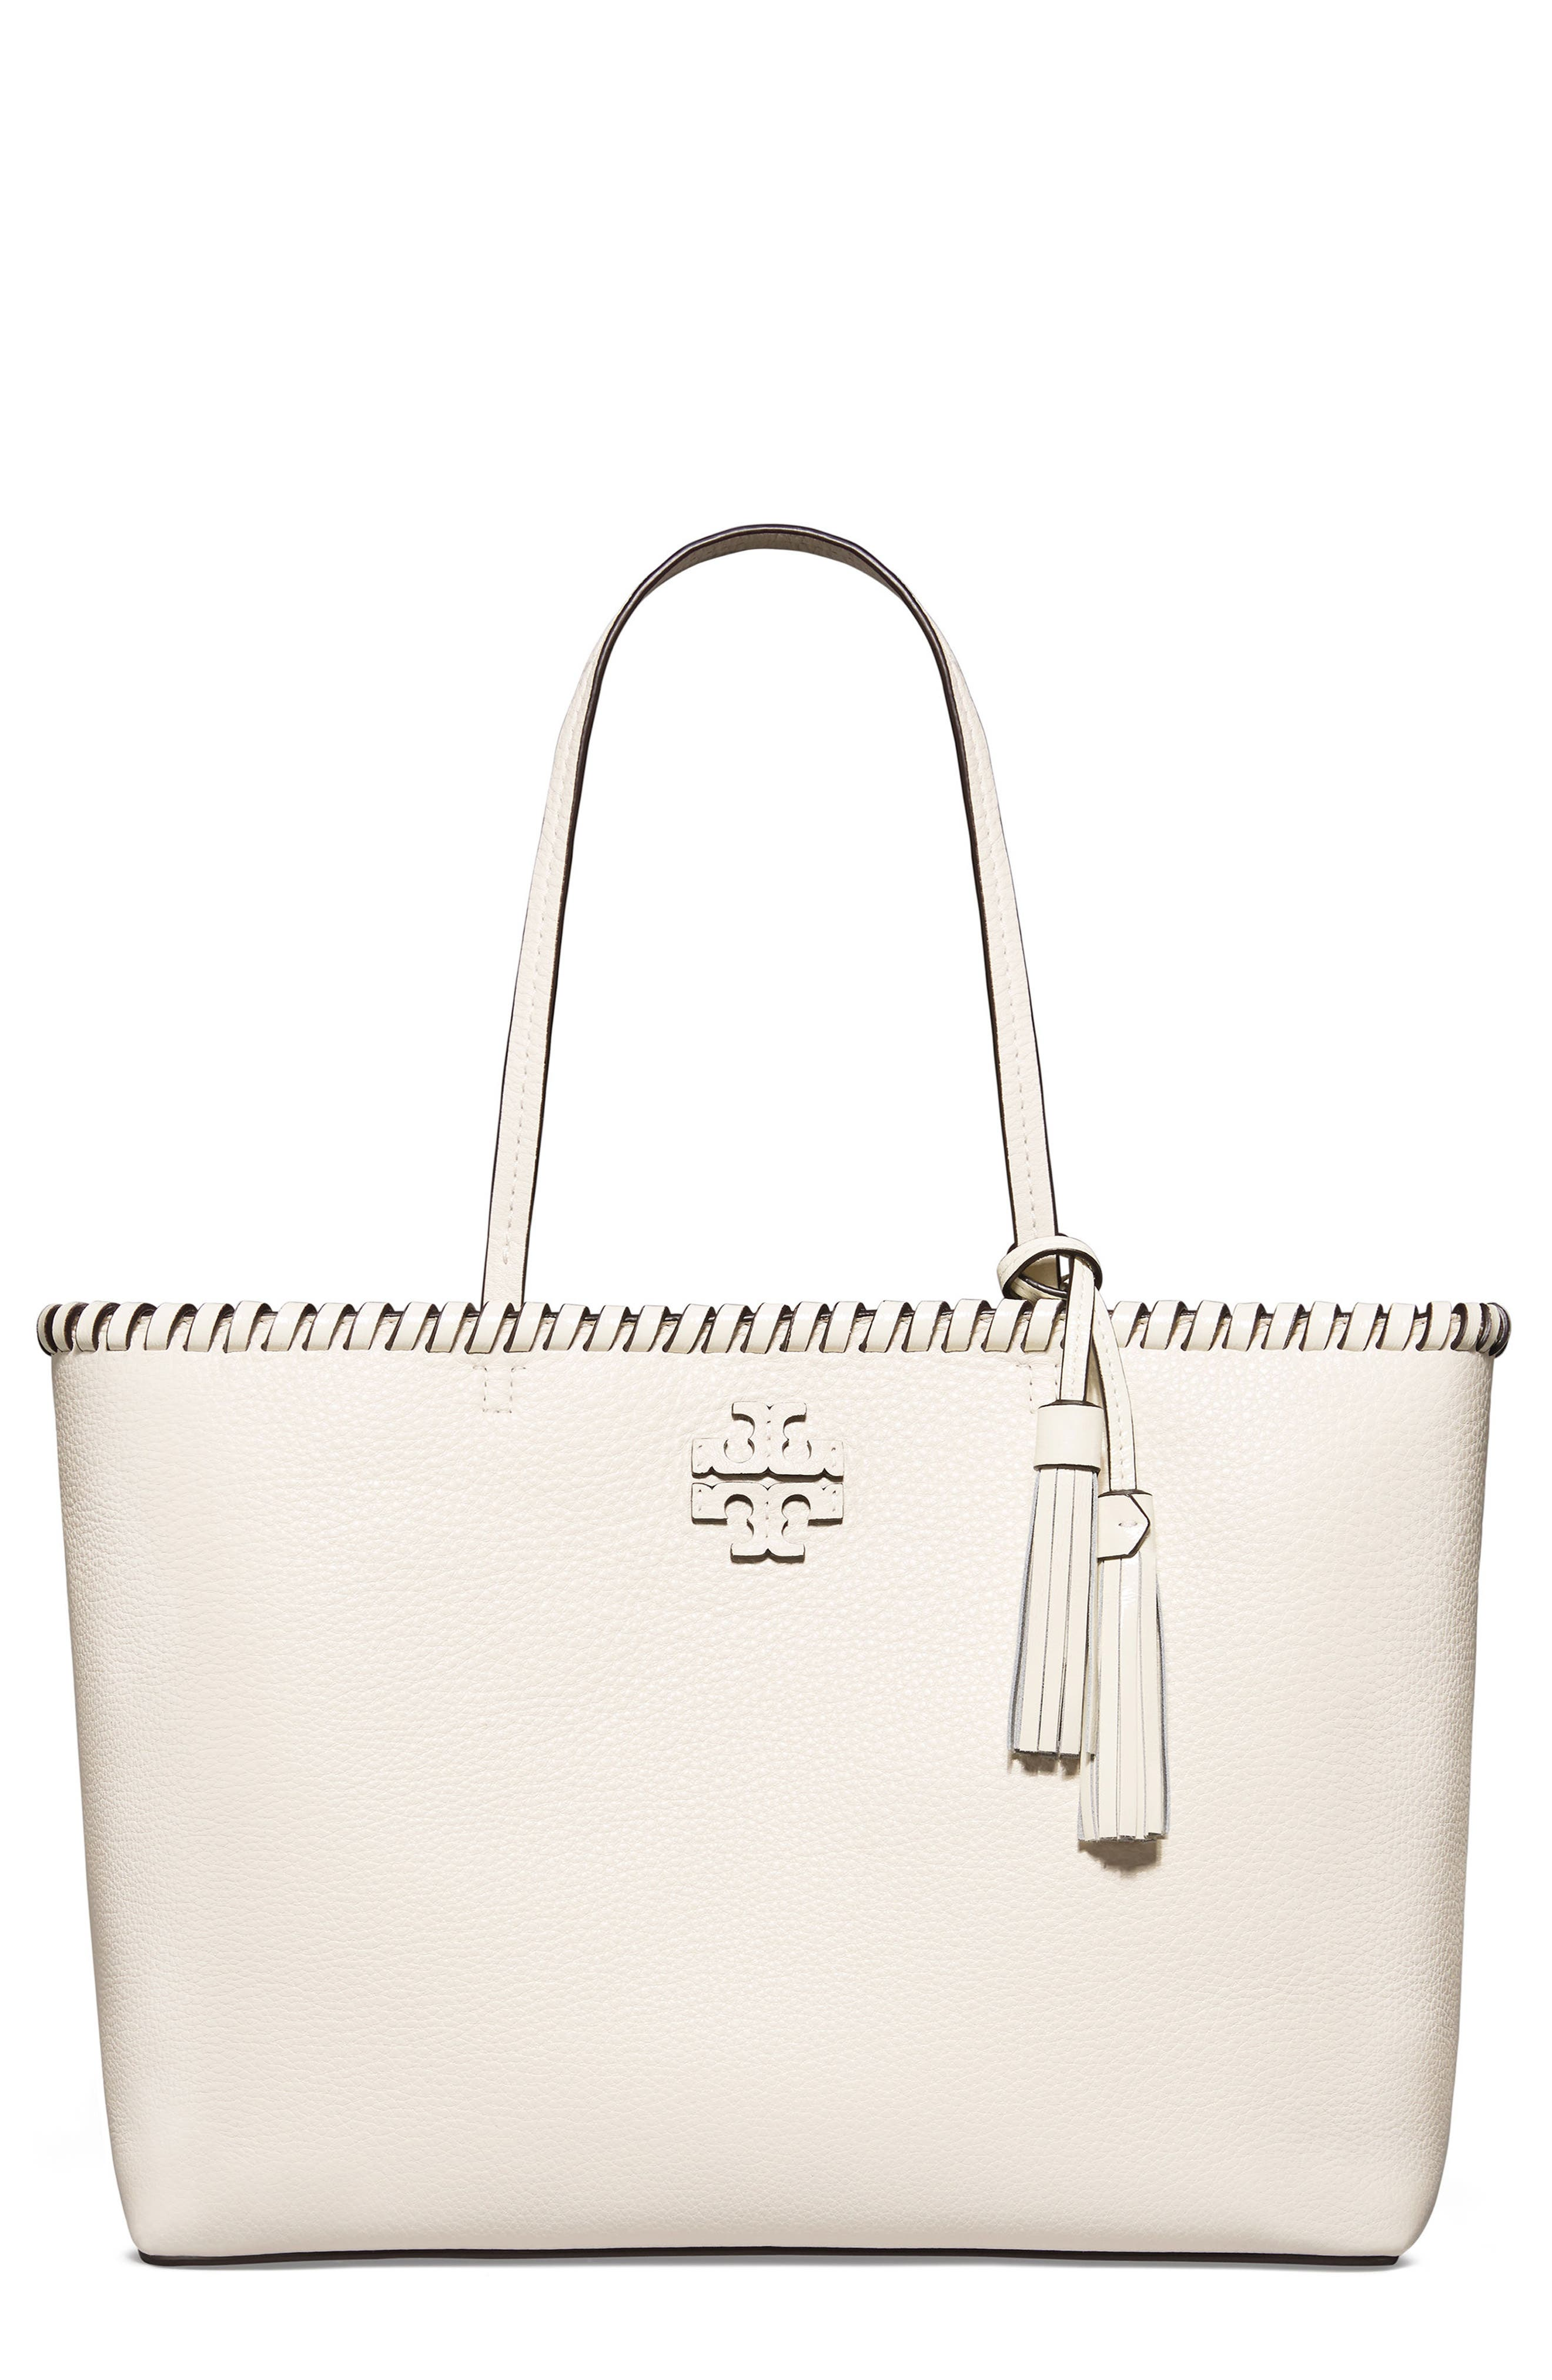 McGraw Whipstitch Leather Tote,                             Main thumbnail 1, color,